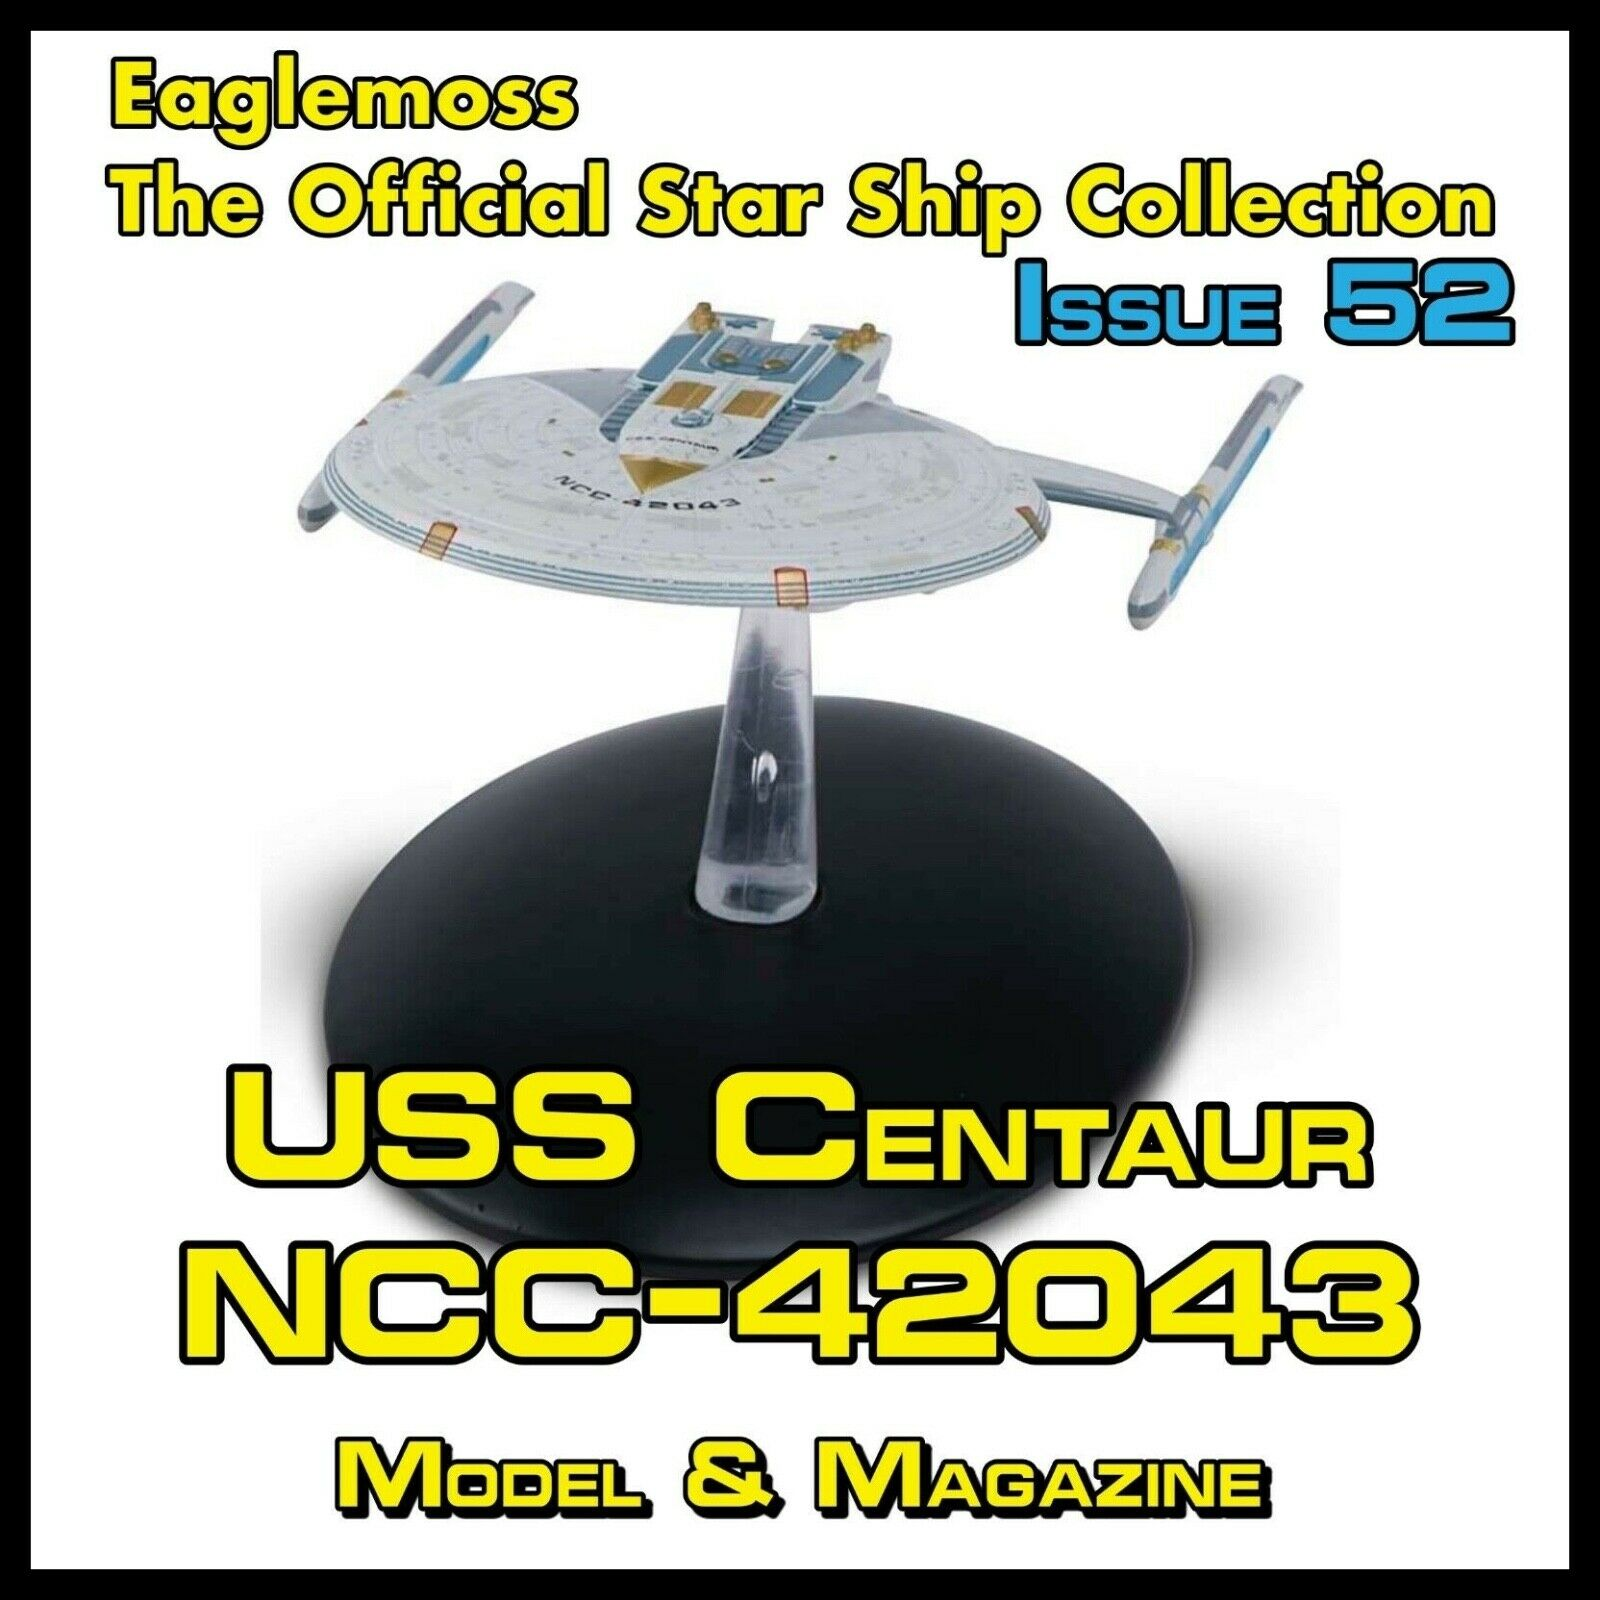 Issue 52 USS Centaur